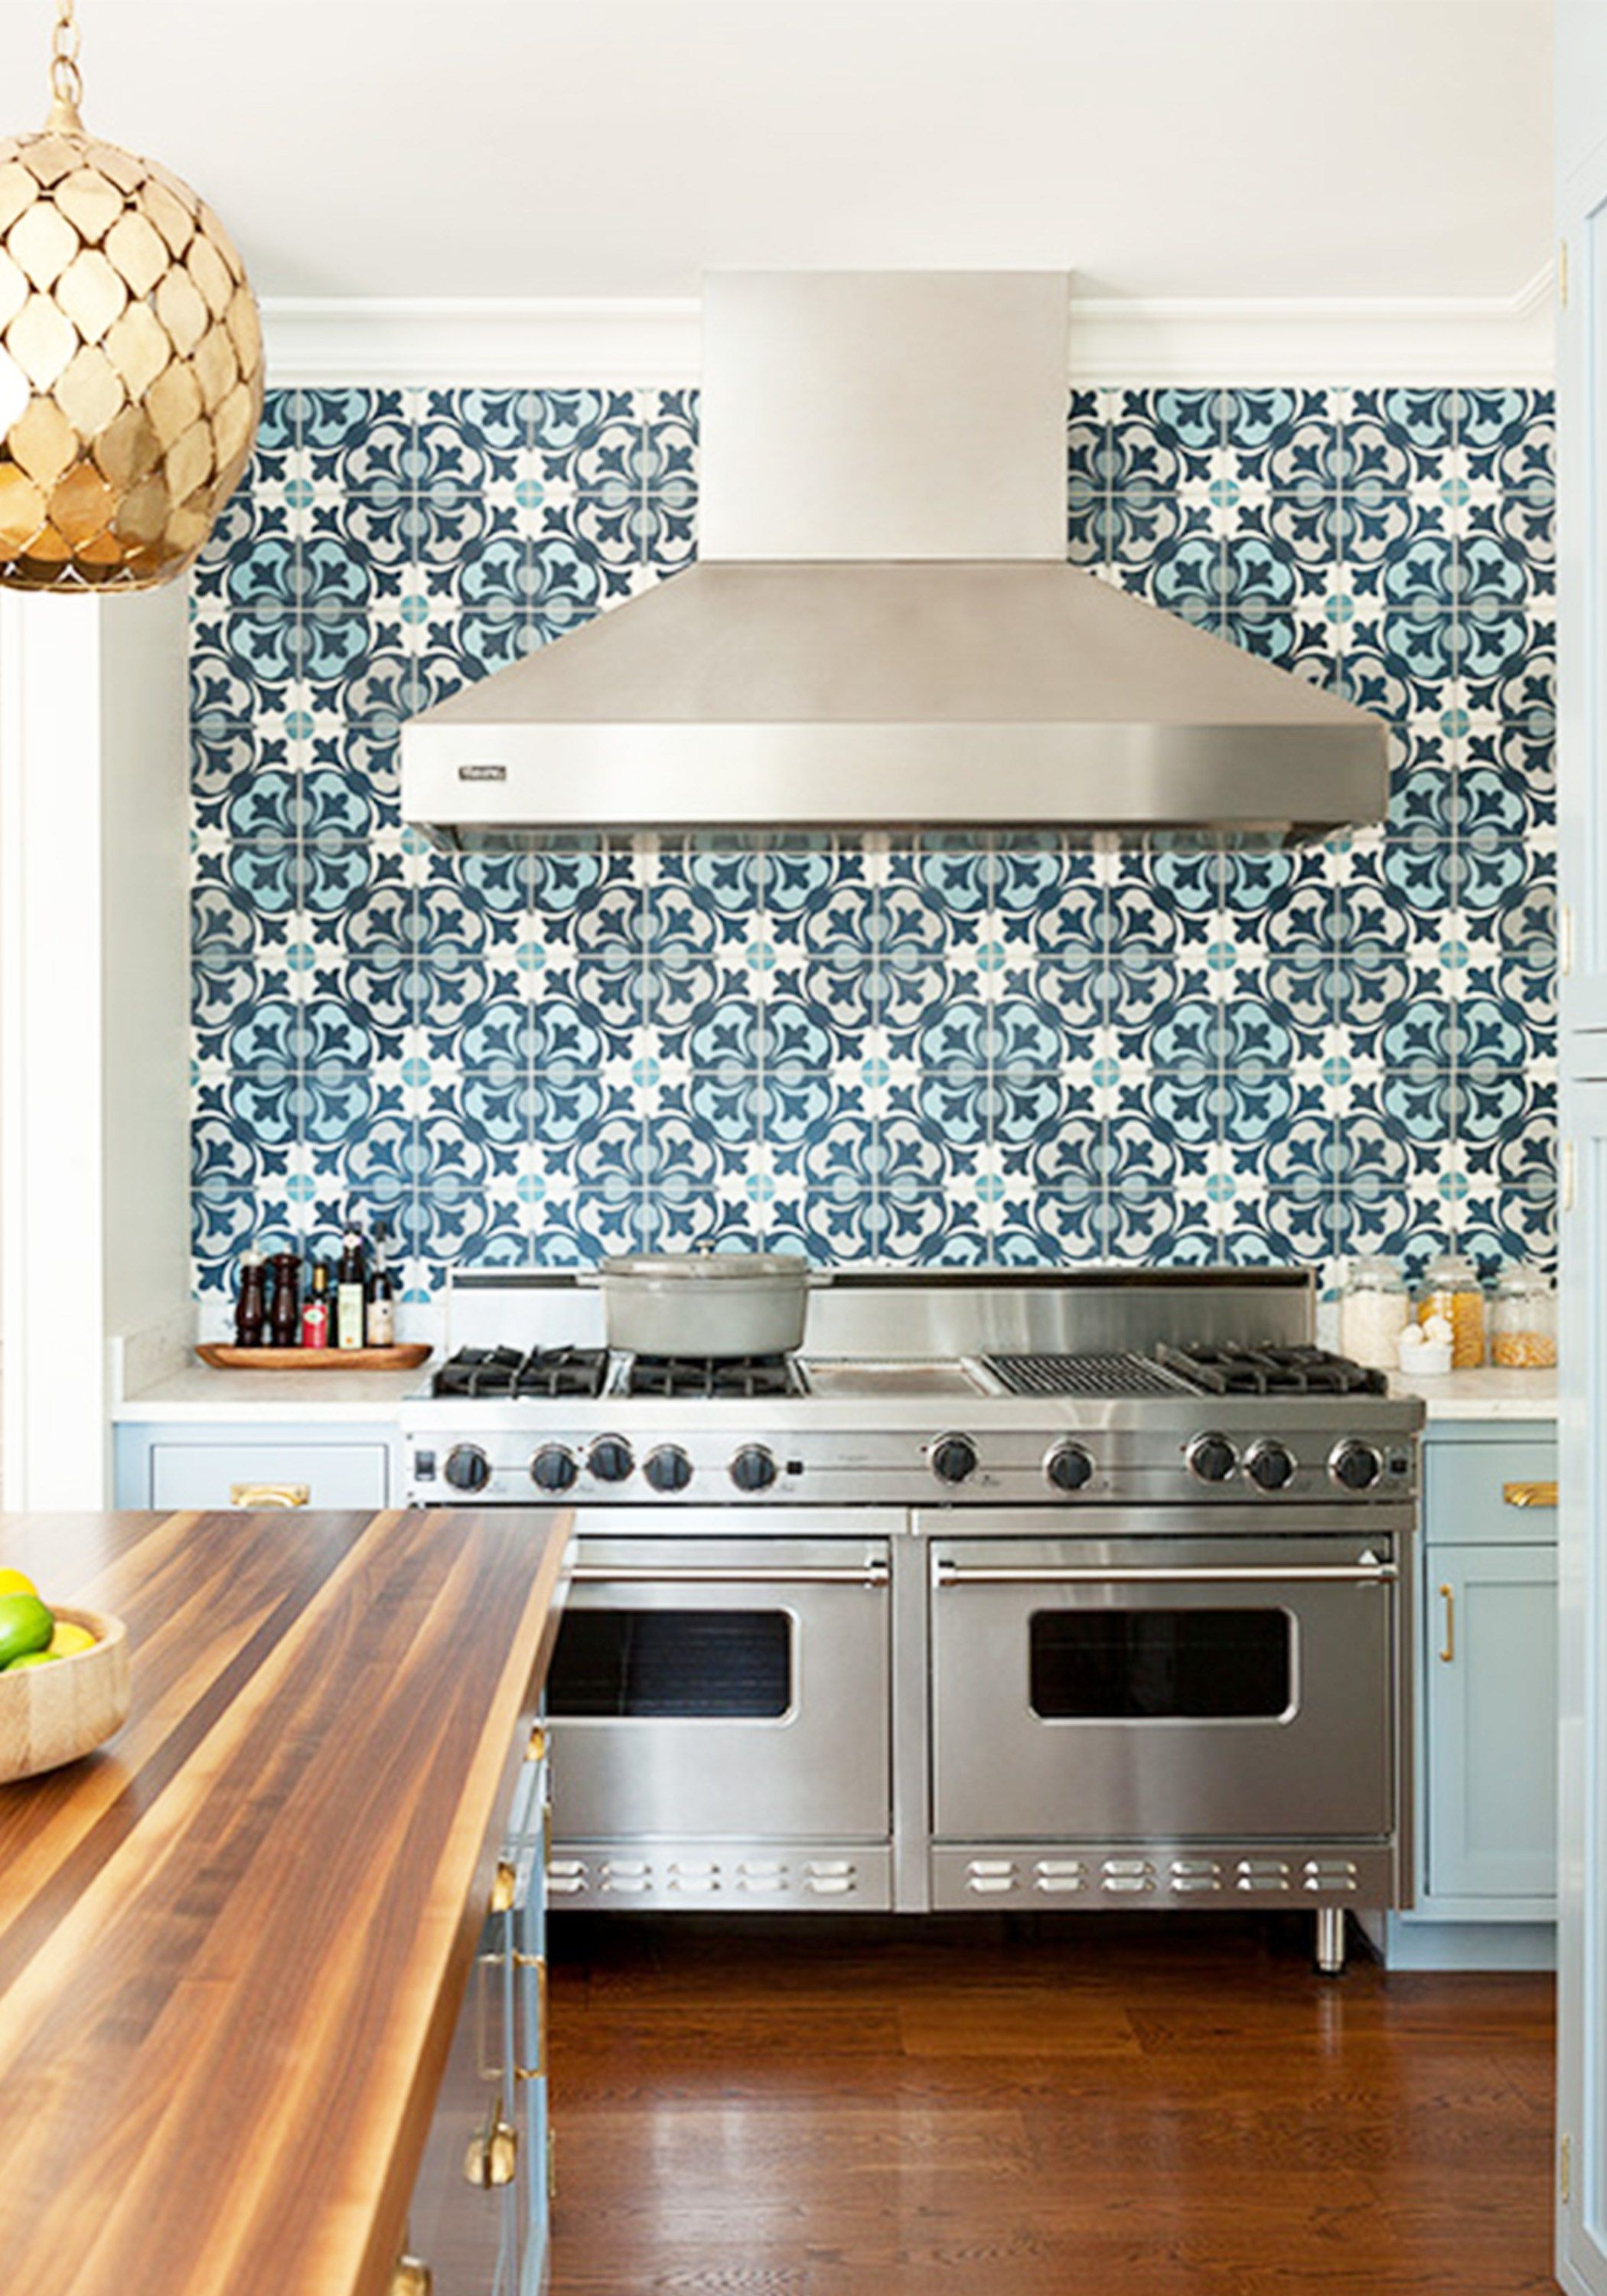 - 17 Tempting Tile Backsplash Ideas For Behind The Stove Kitchen